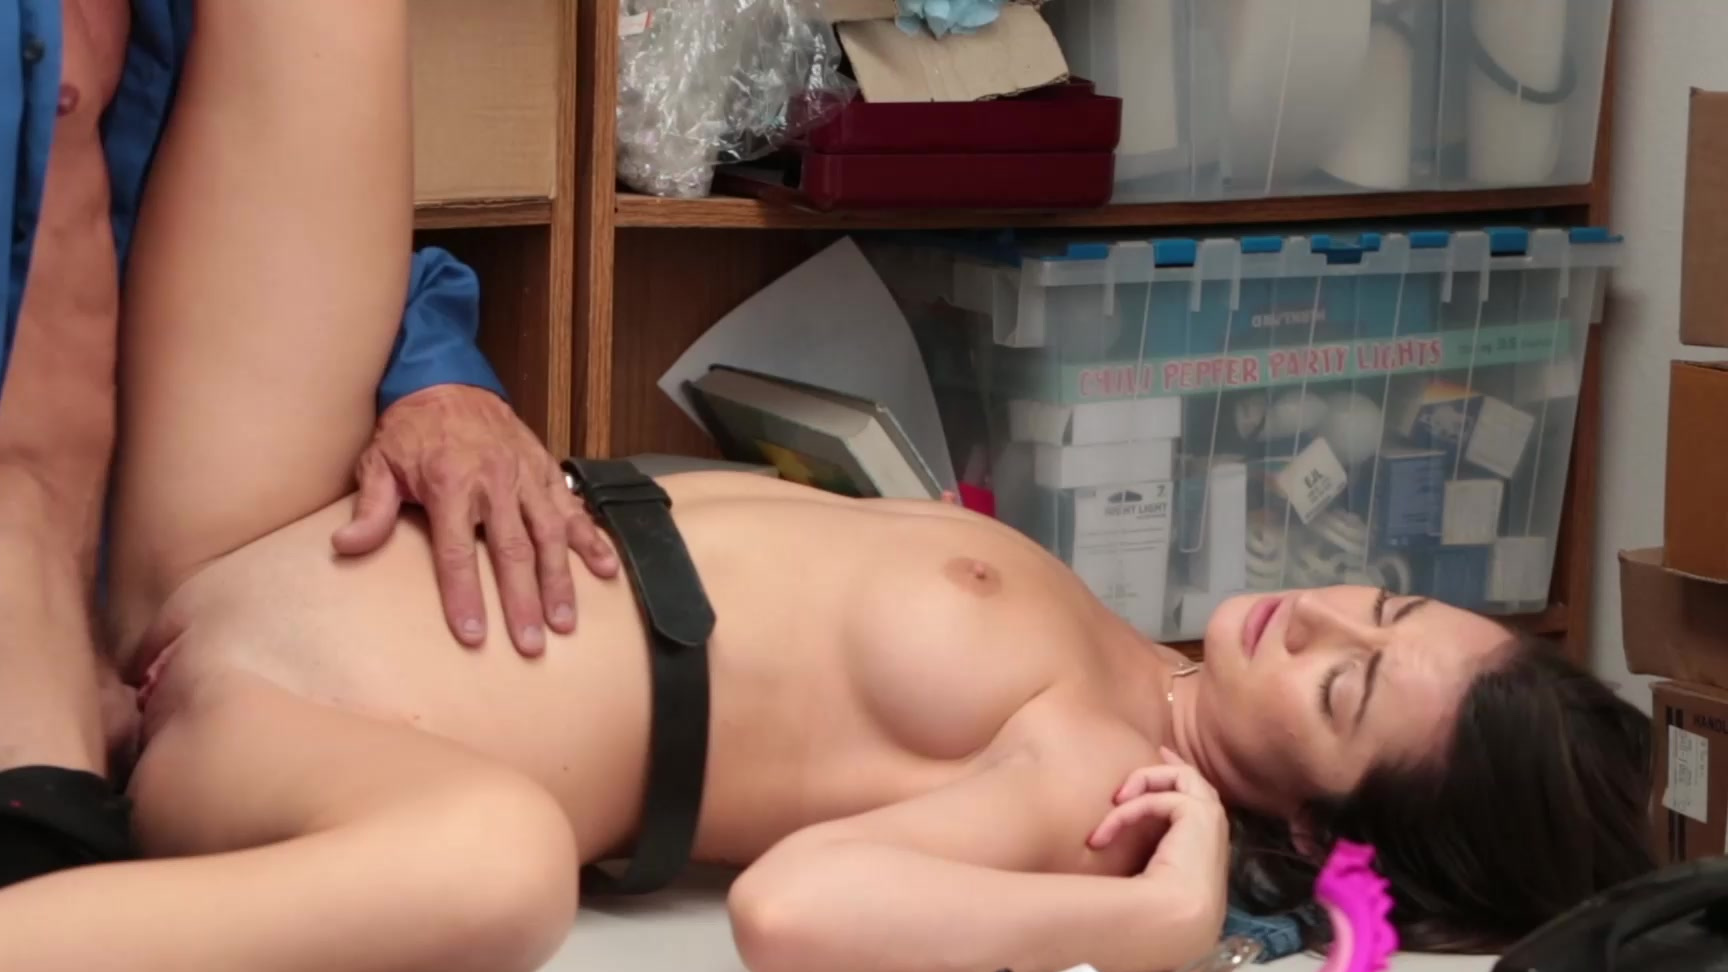 with you agree. latina kristina rose fucks a bbc in multiple angles sorry, that